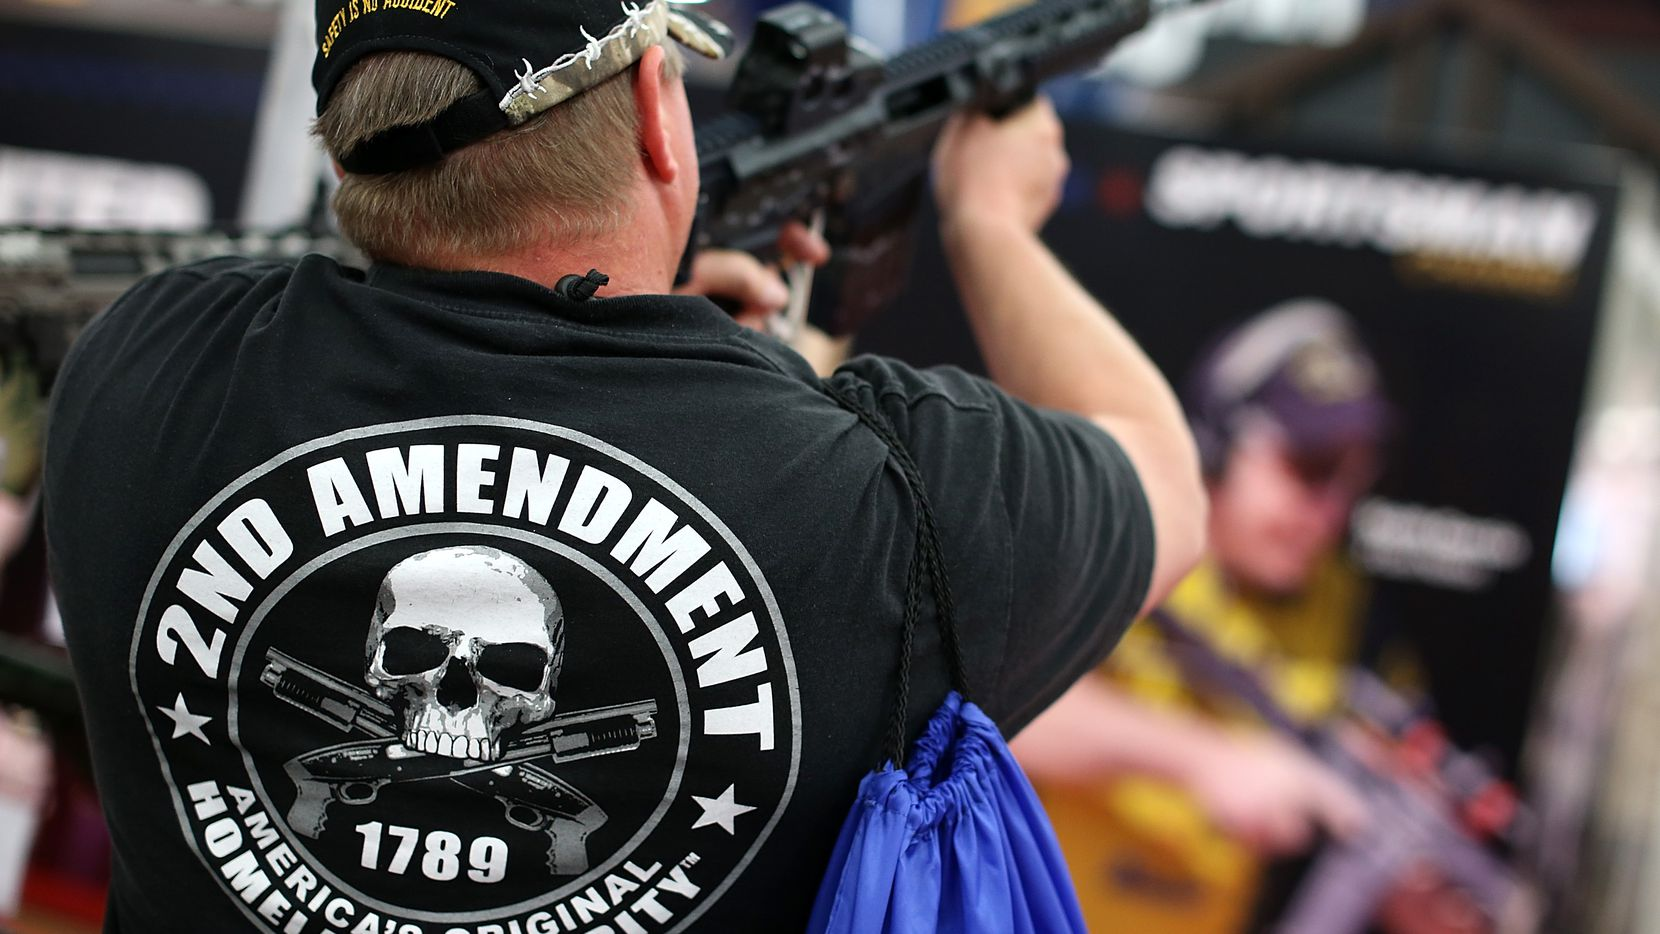 An attendee wears a Second Amendment shirt while inspecting an assault rifle during the 2013 NRA Annual Meeting and Exhibits at the George R. Brown Convention Center in Houston.